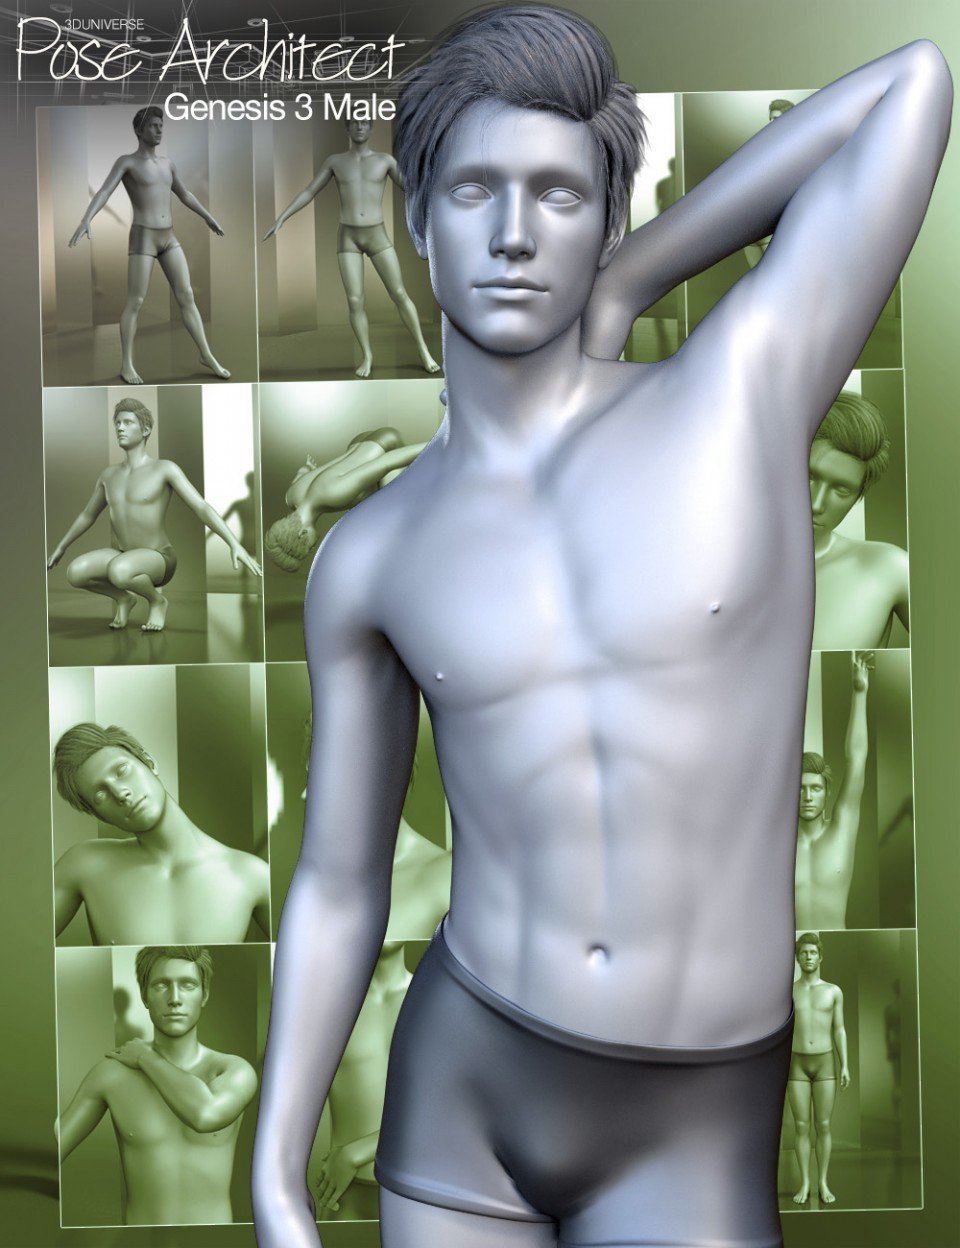 Pose Architect for Genesis 3 Male(s)_DAZ3D下载站